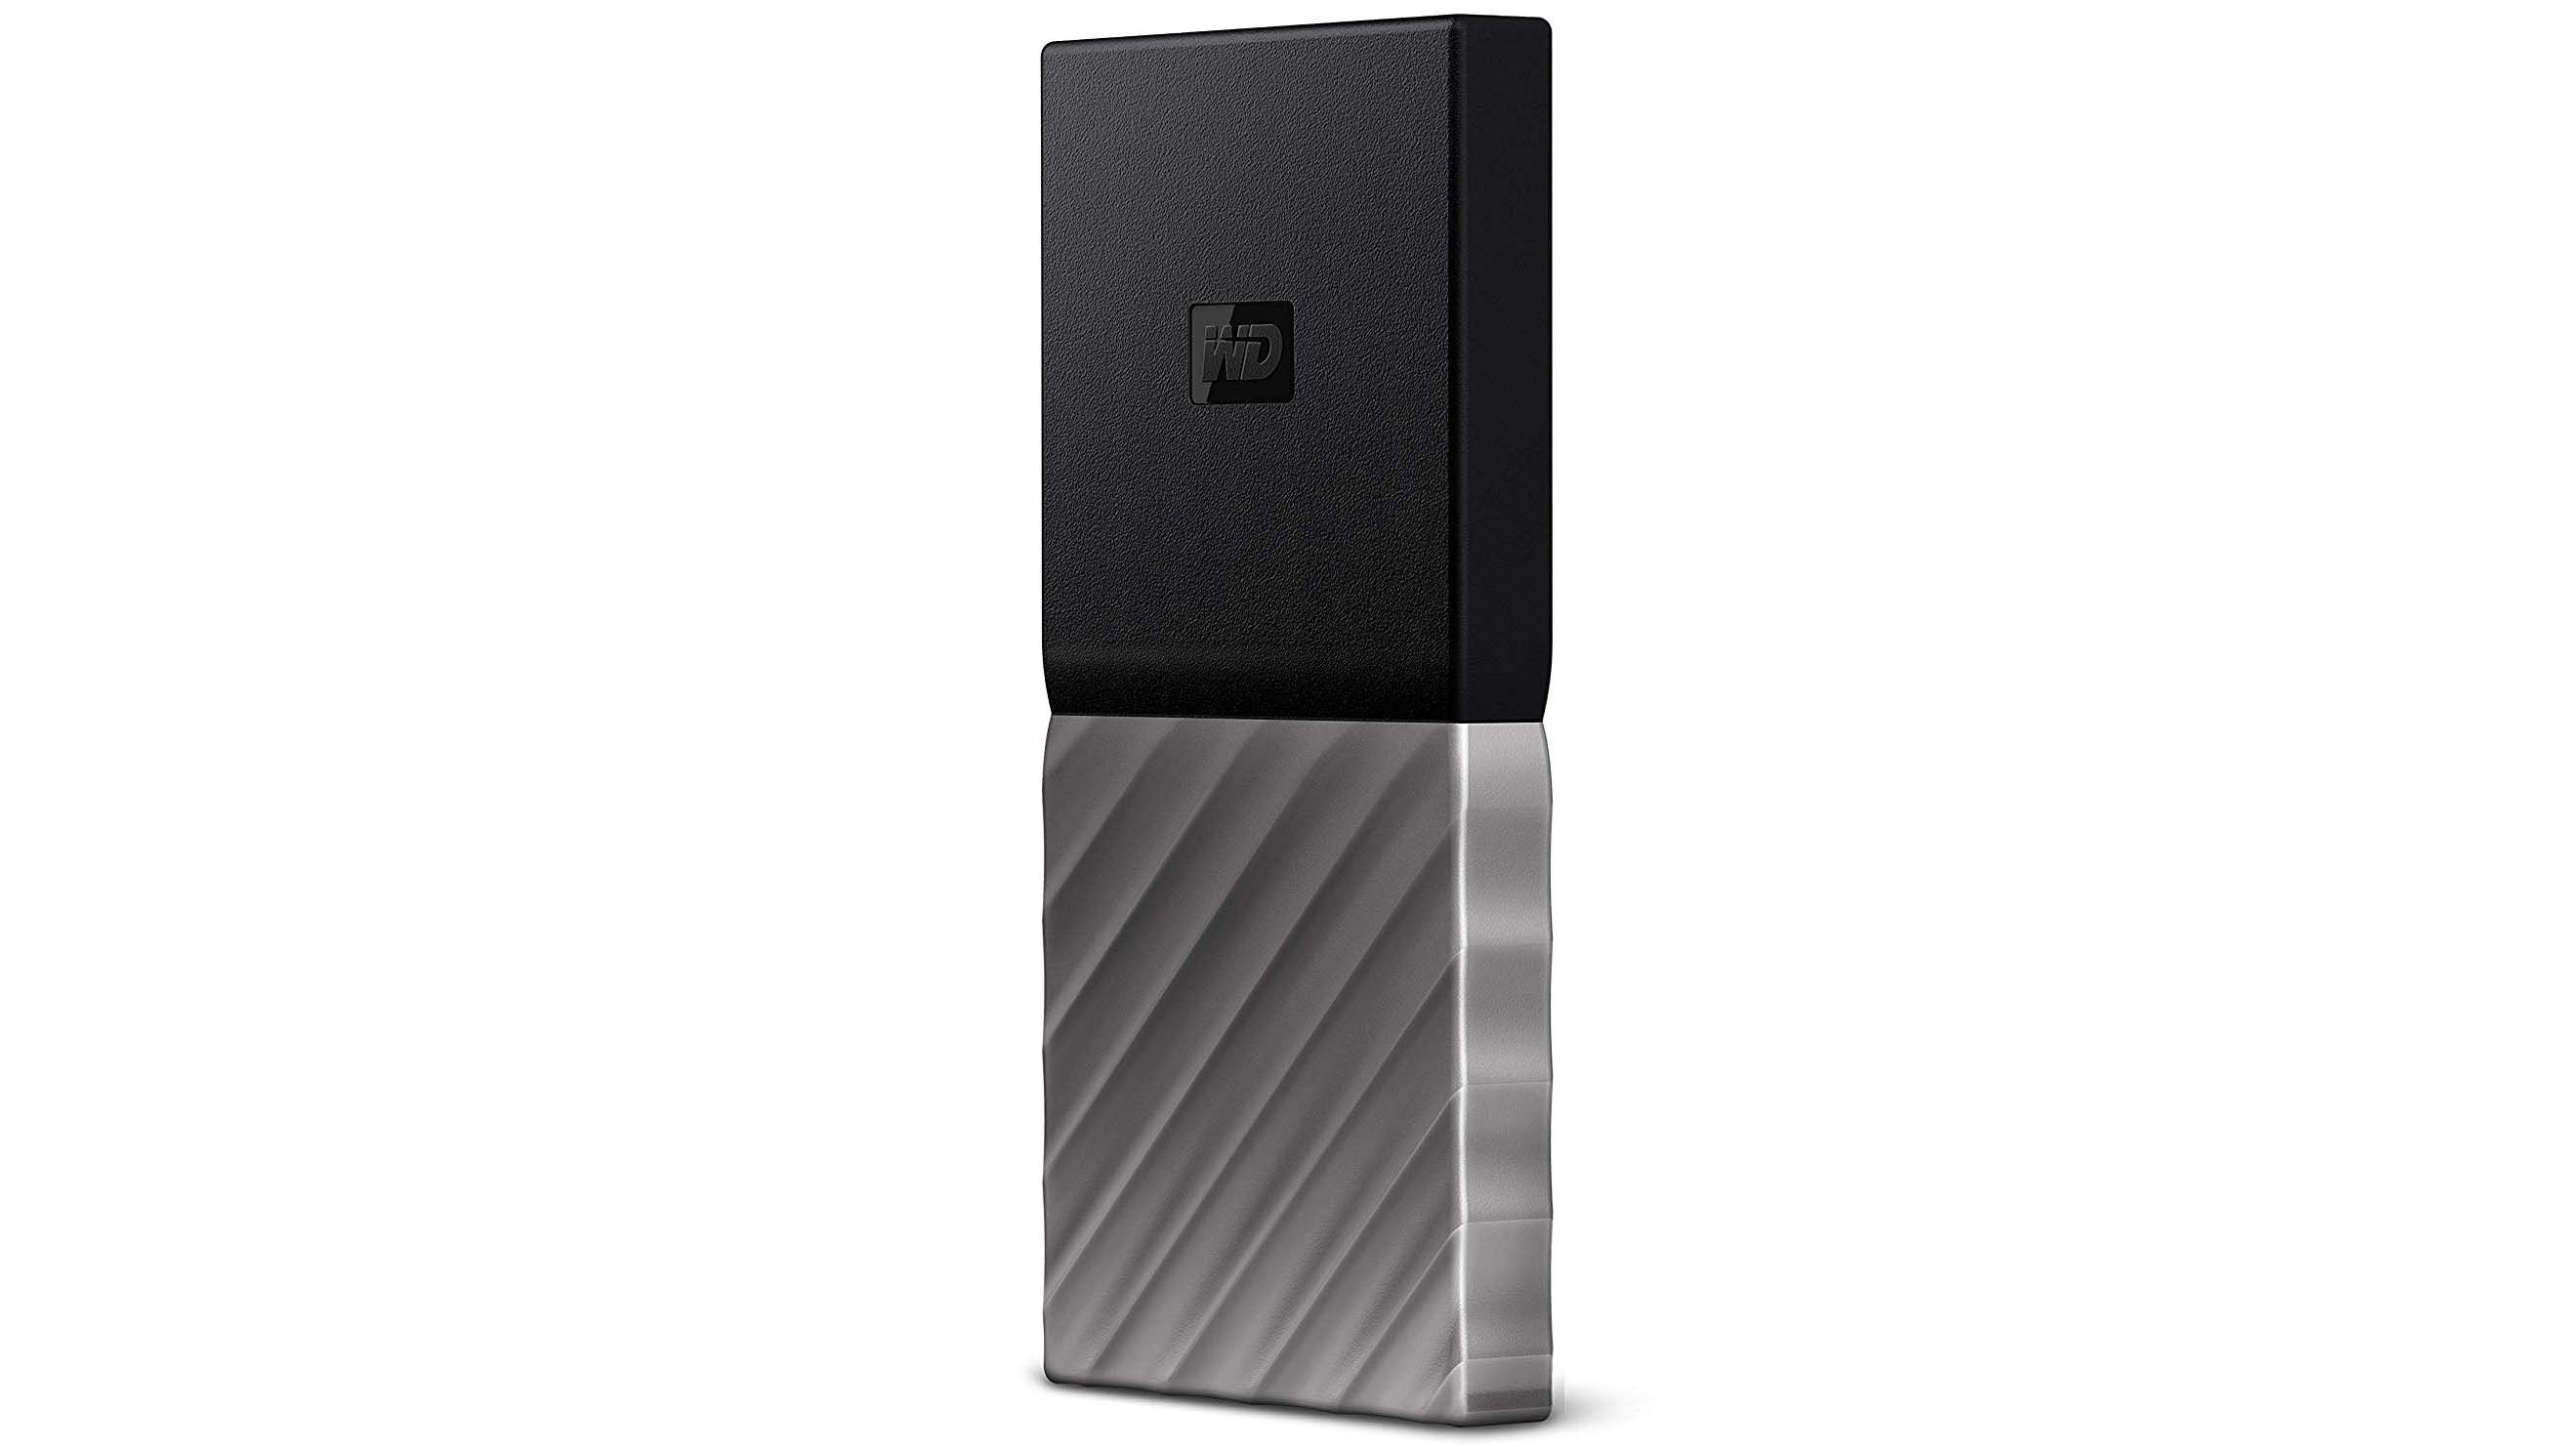 Best External Hard Drive For Playstation 4 The Top Ps4 Drives From